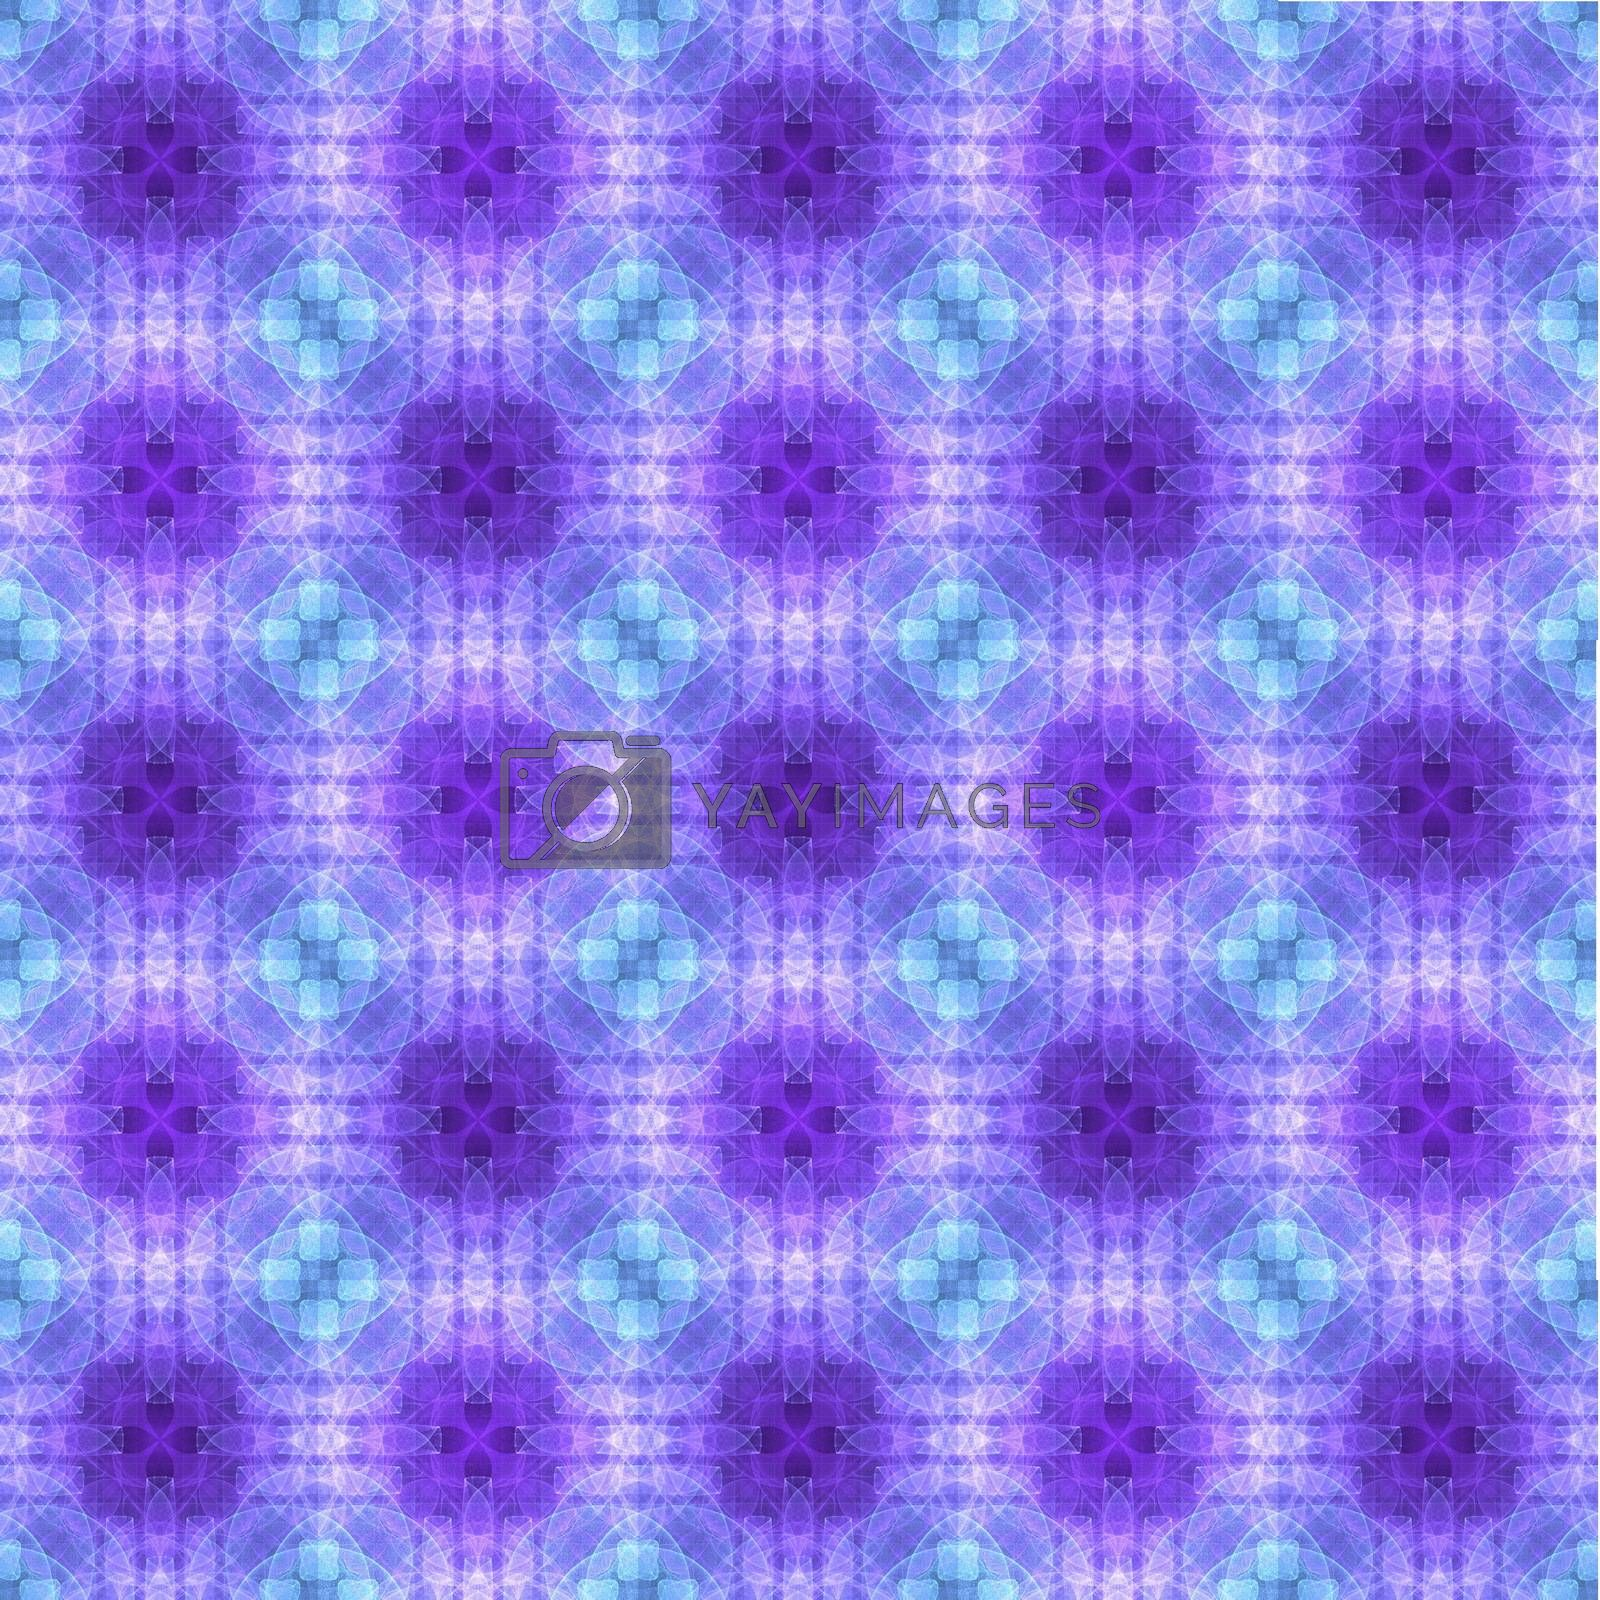 Drawing of Fractal seamless pattern in violet colors